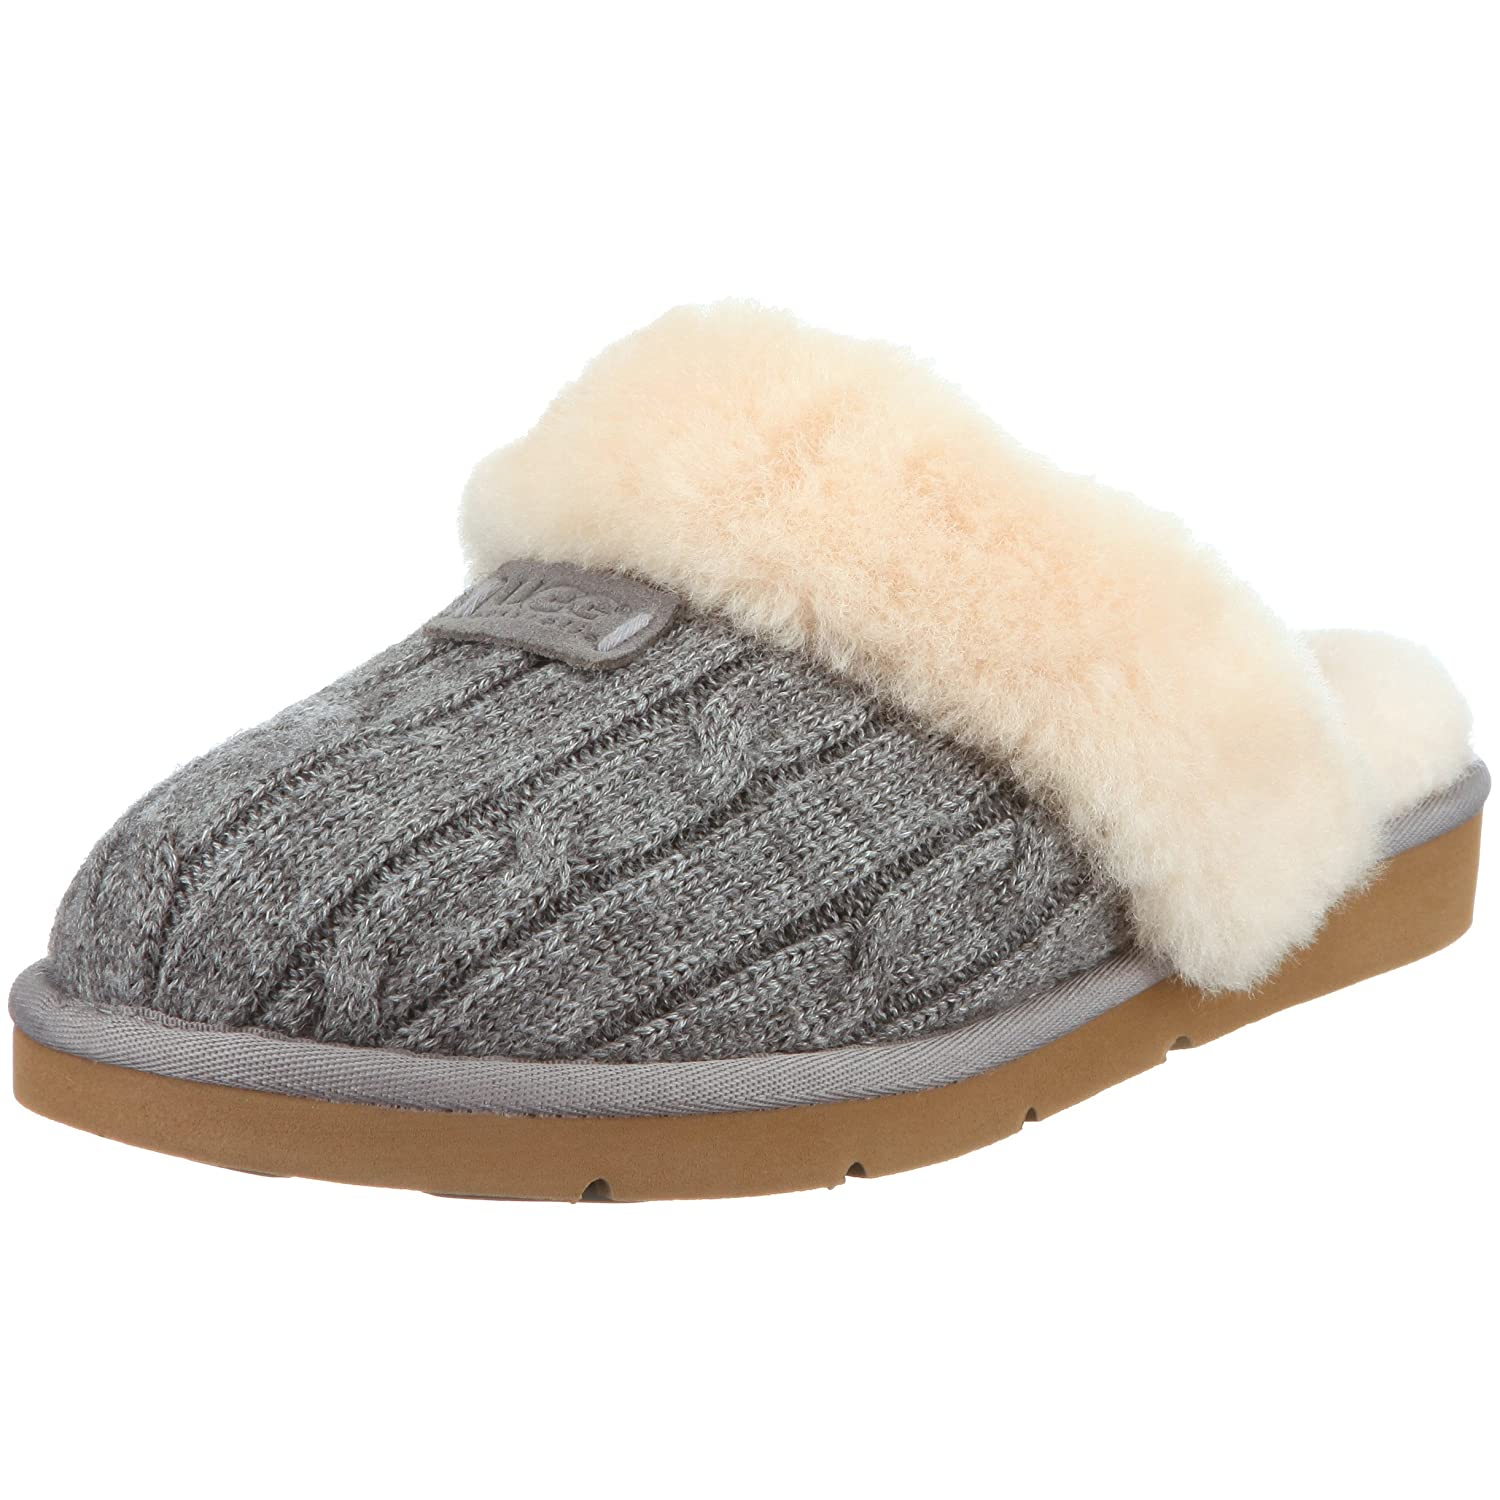 Ugg Slippers Uk Womens